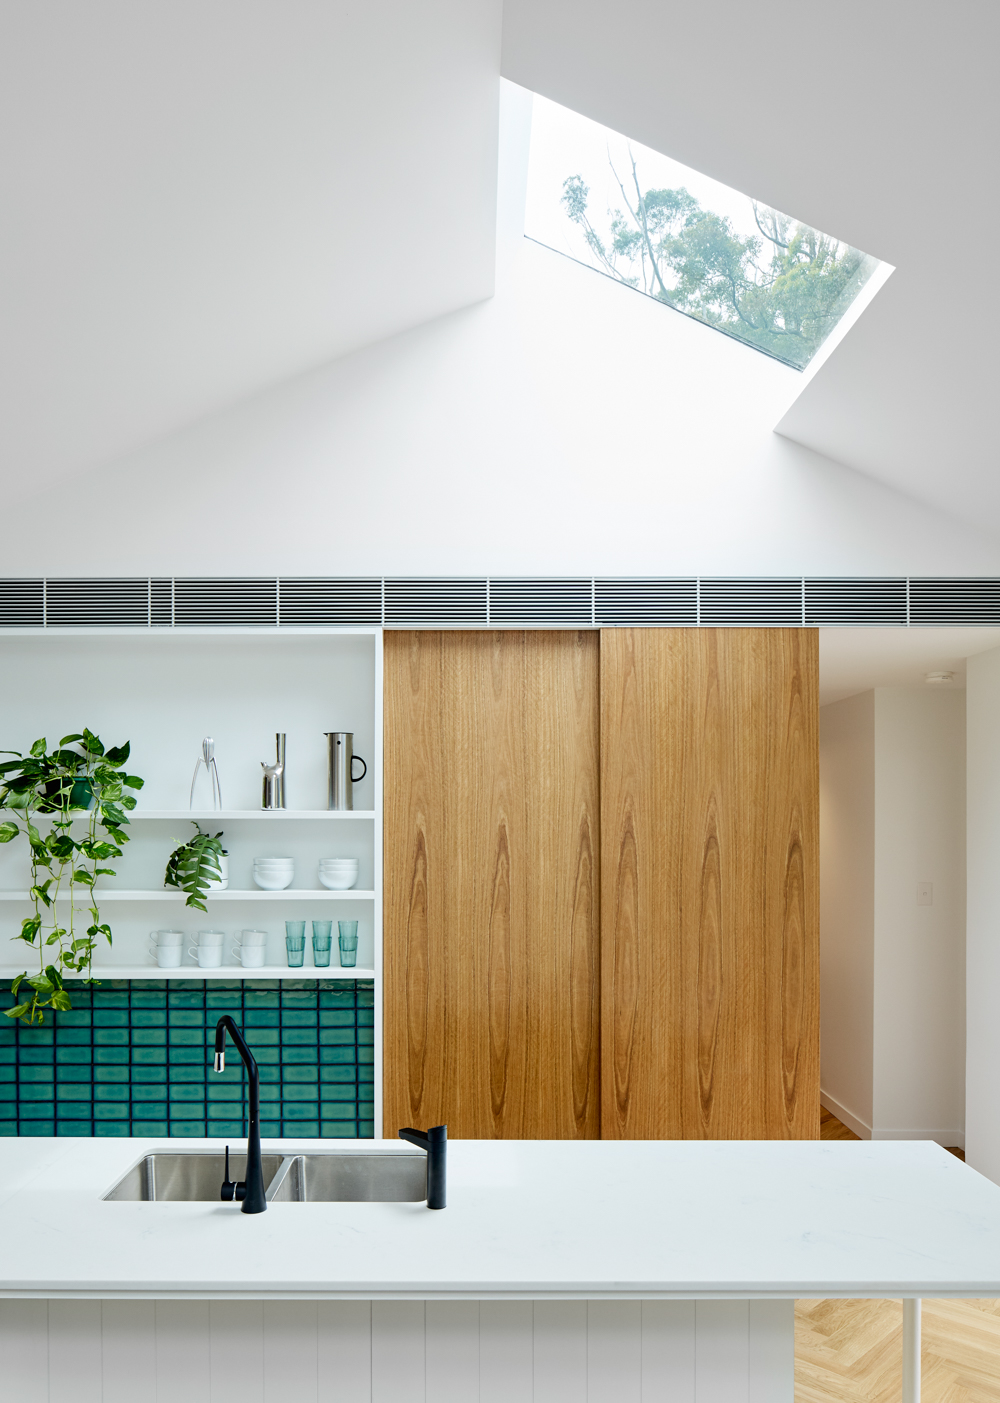 Looking at kitchen with skylight above